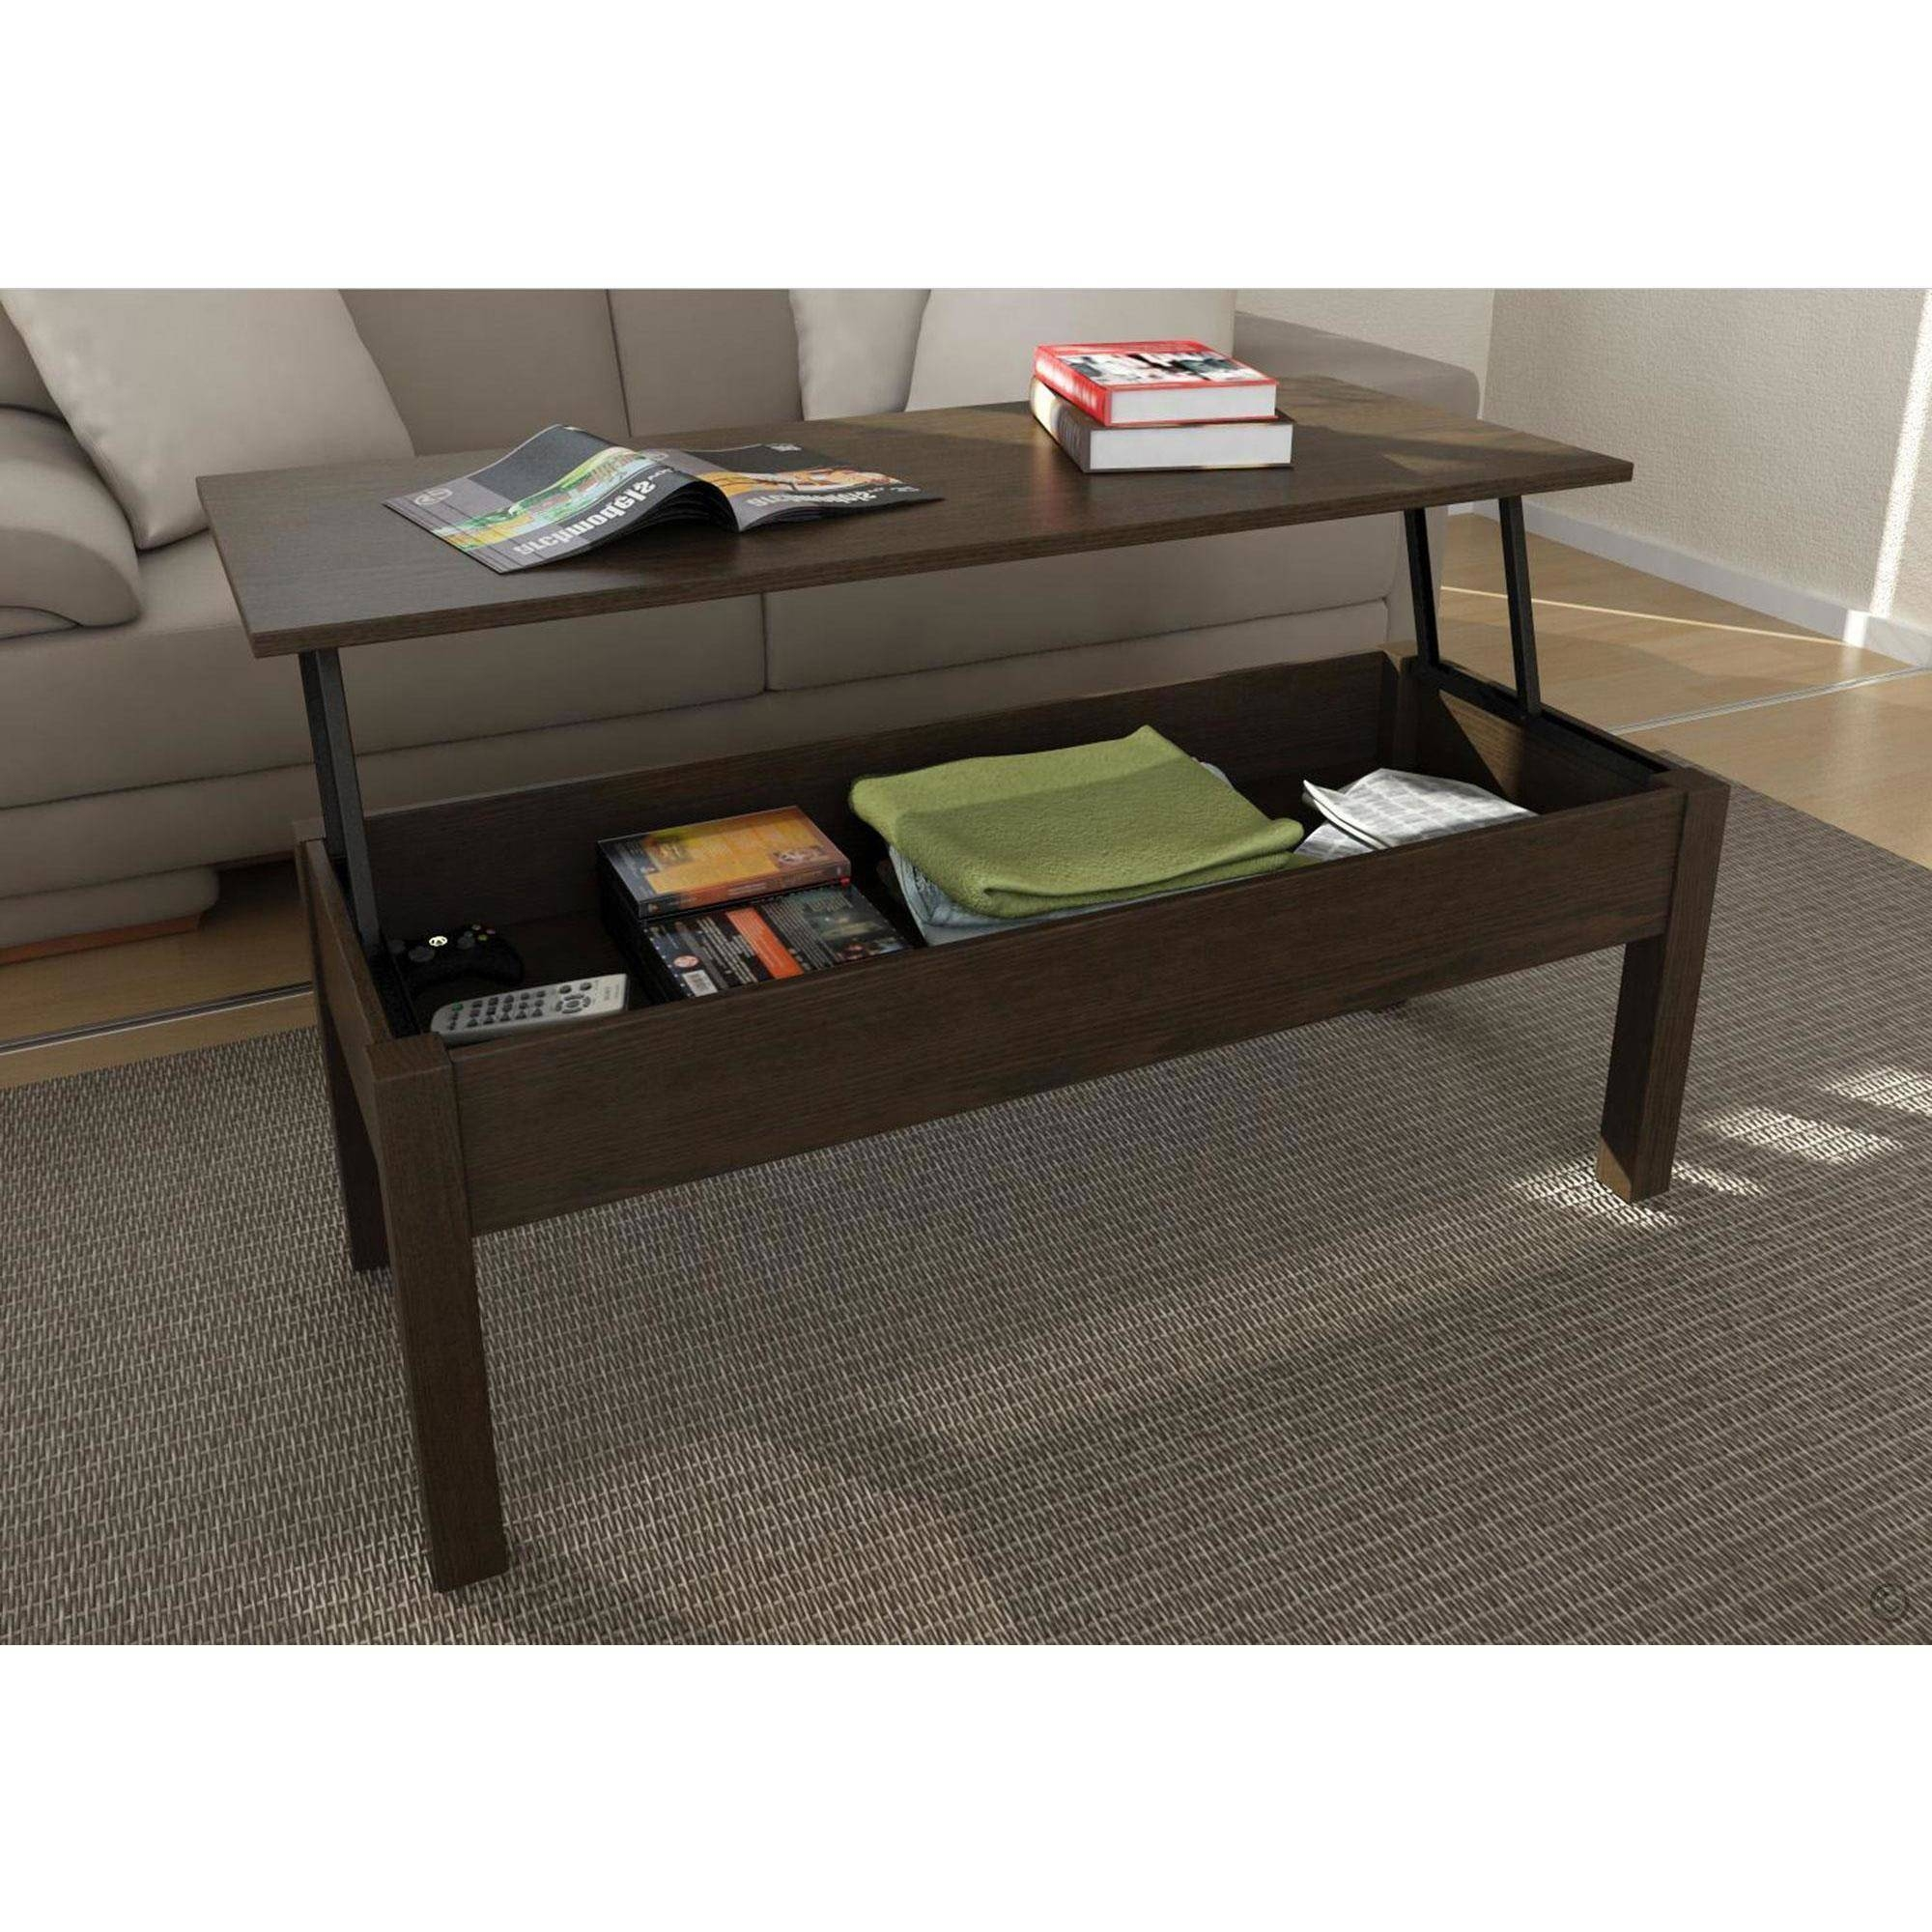 Mainstays Lift-Top Coffee Table, Multiple Colors - Walmart throughout Top Lifting Coffee Tables (Image 22 of 30)